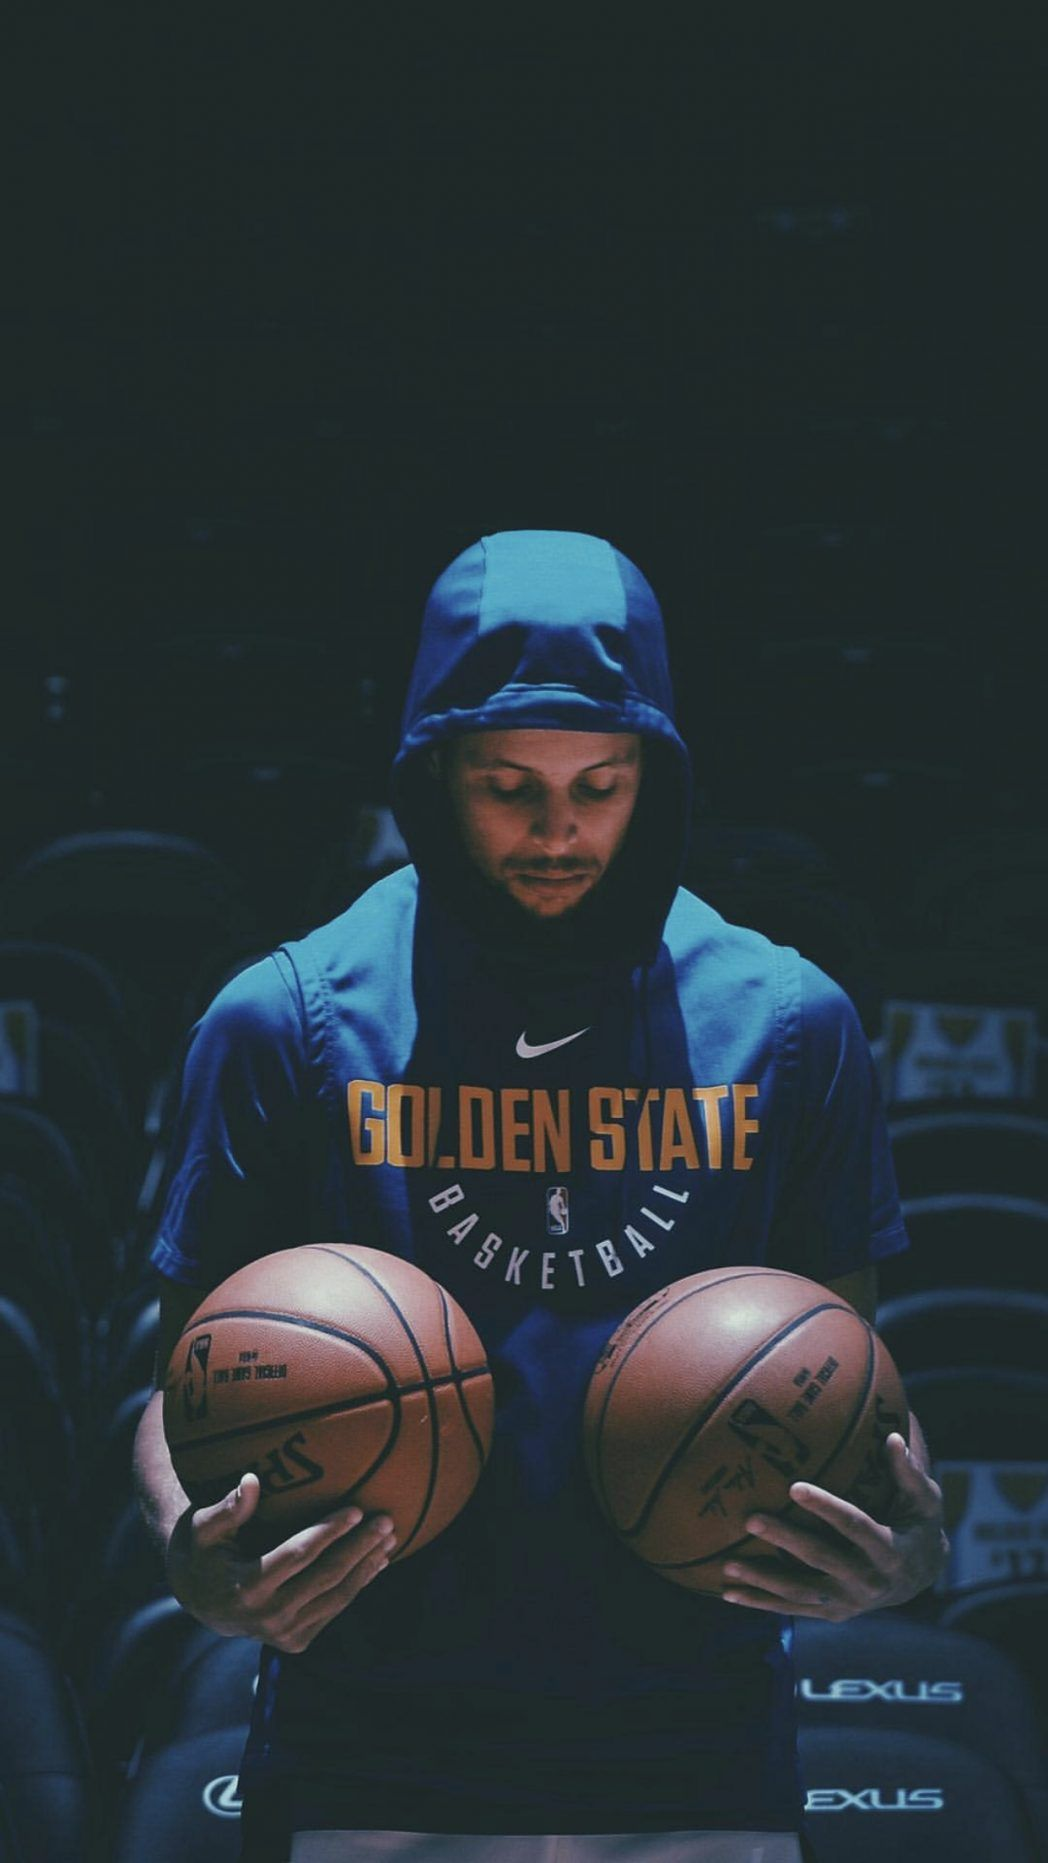 81wallpaper Cool Basketball Quotes In 2020 Nba Stephen Curry Curry Nba Curry Wallpaper